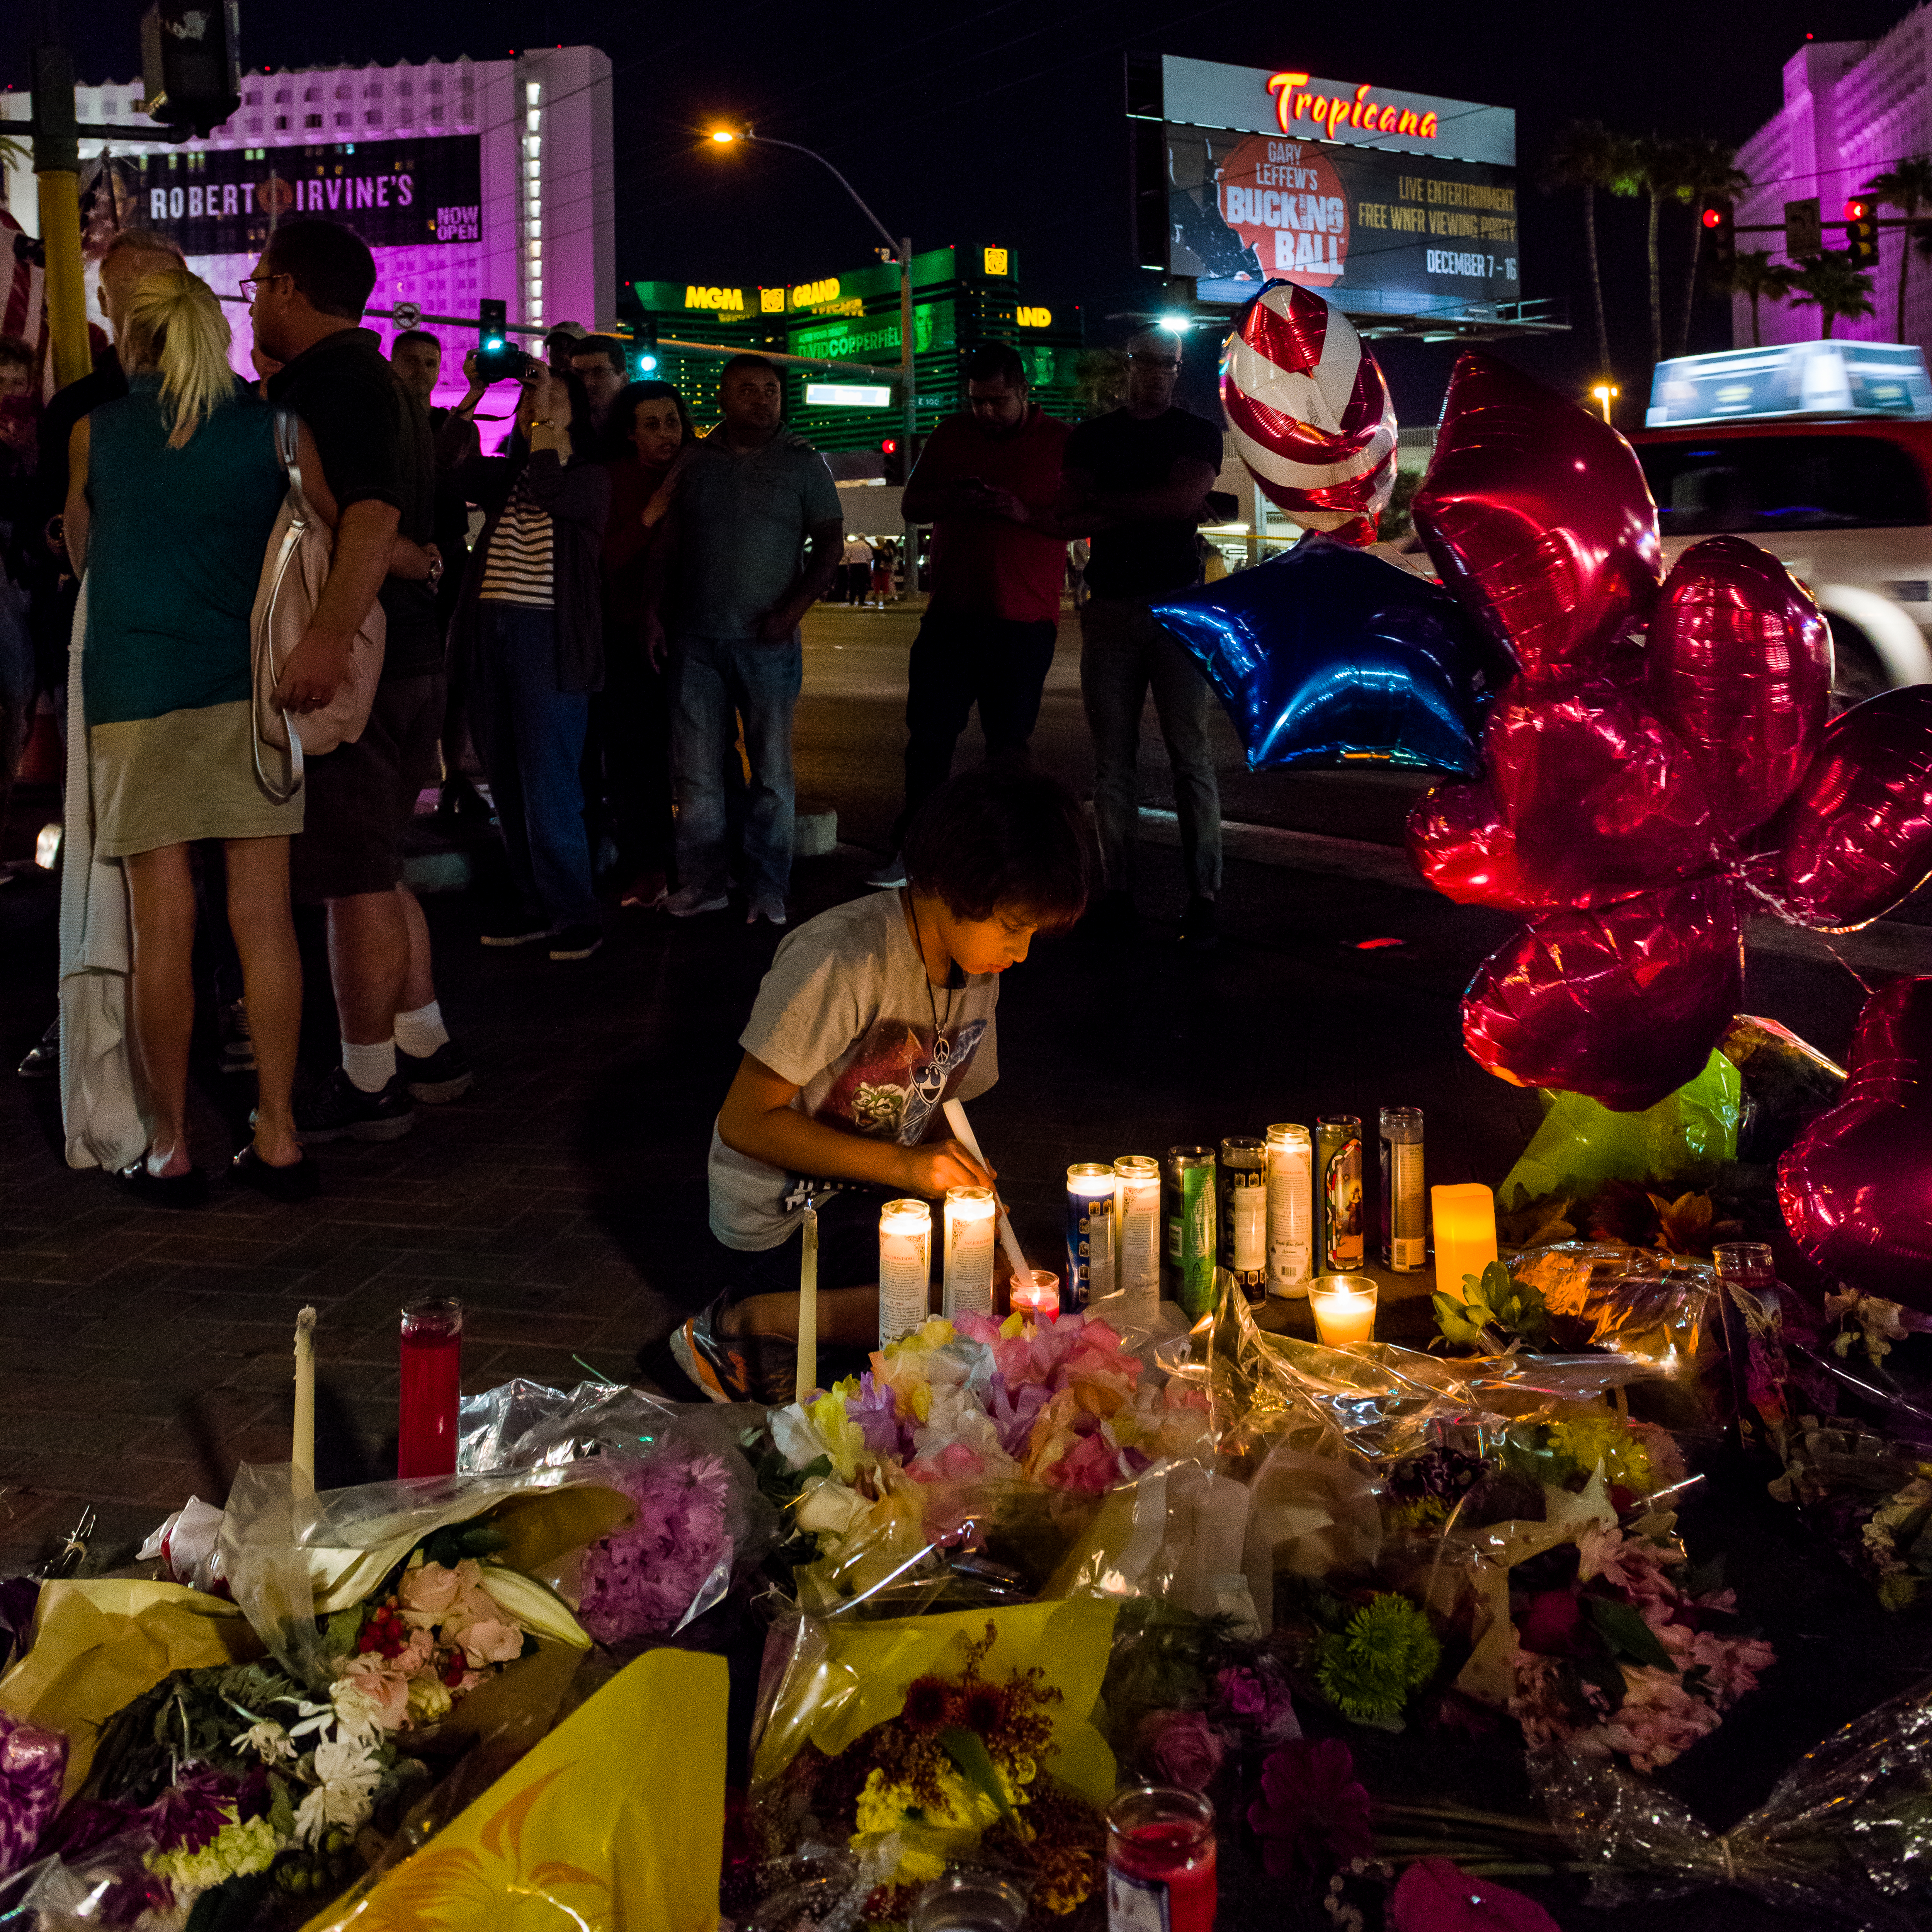 Child lights candles at a victims memorial vigil on Las Vegas Blvd. across from the Route 91 Festival location